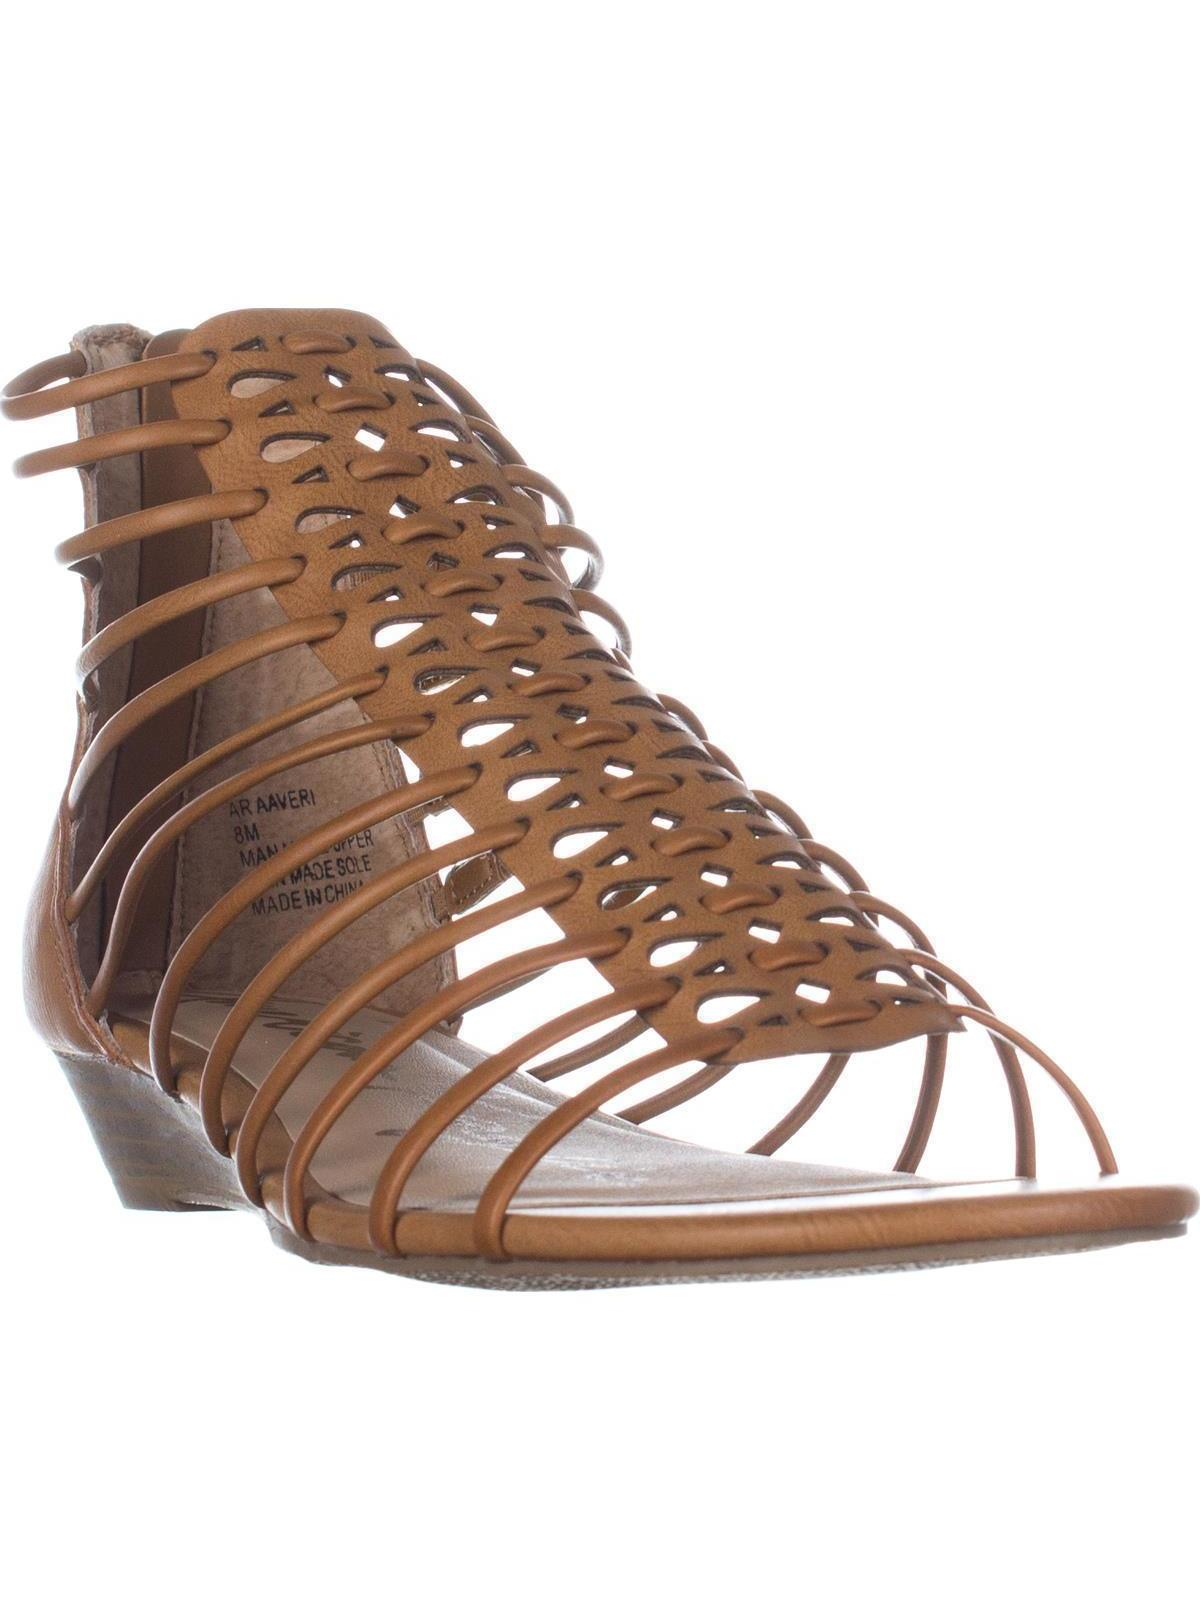 b5e3ae6720f AR35 Averi Gladiator Wedge Sandals